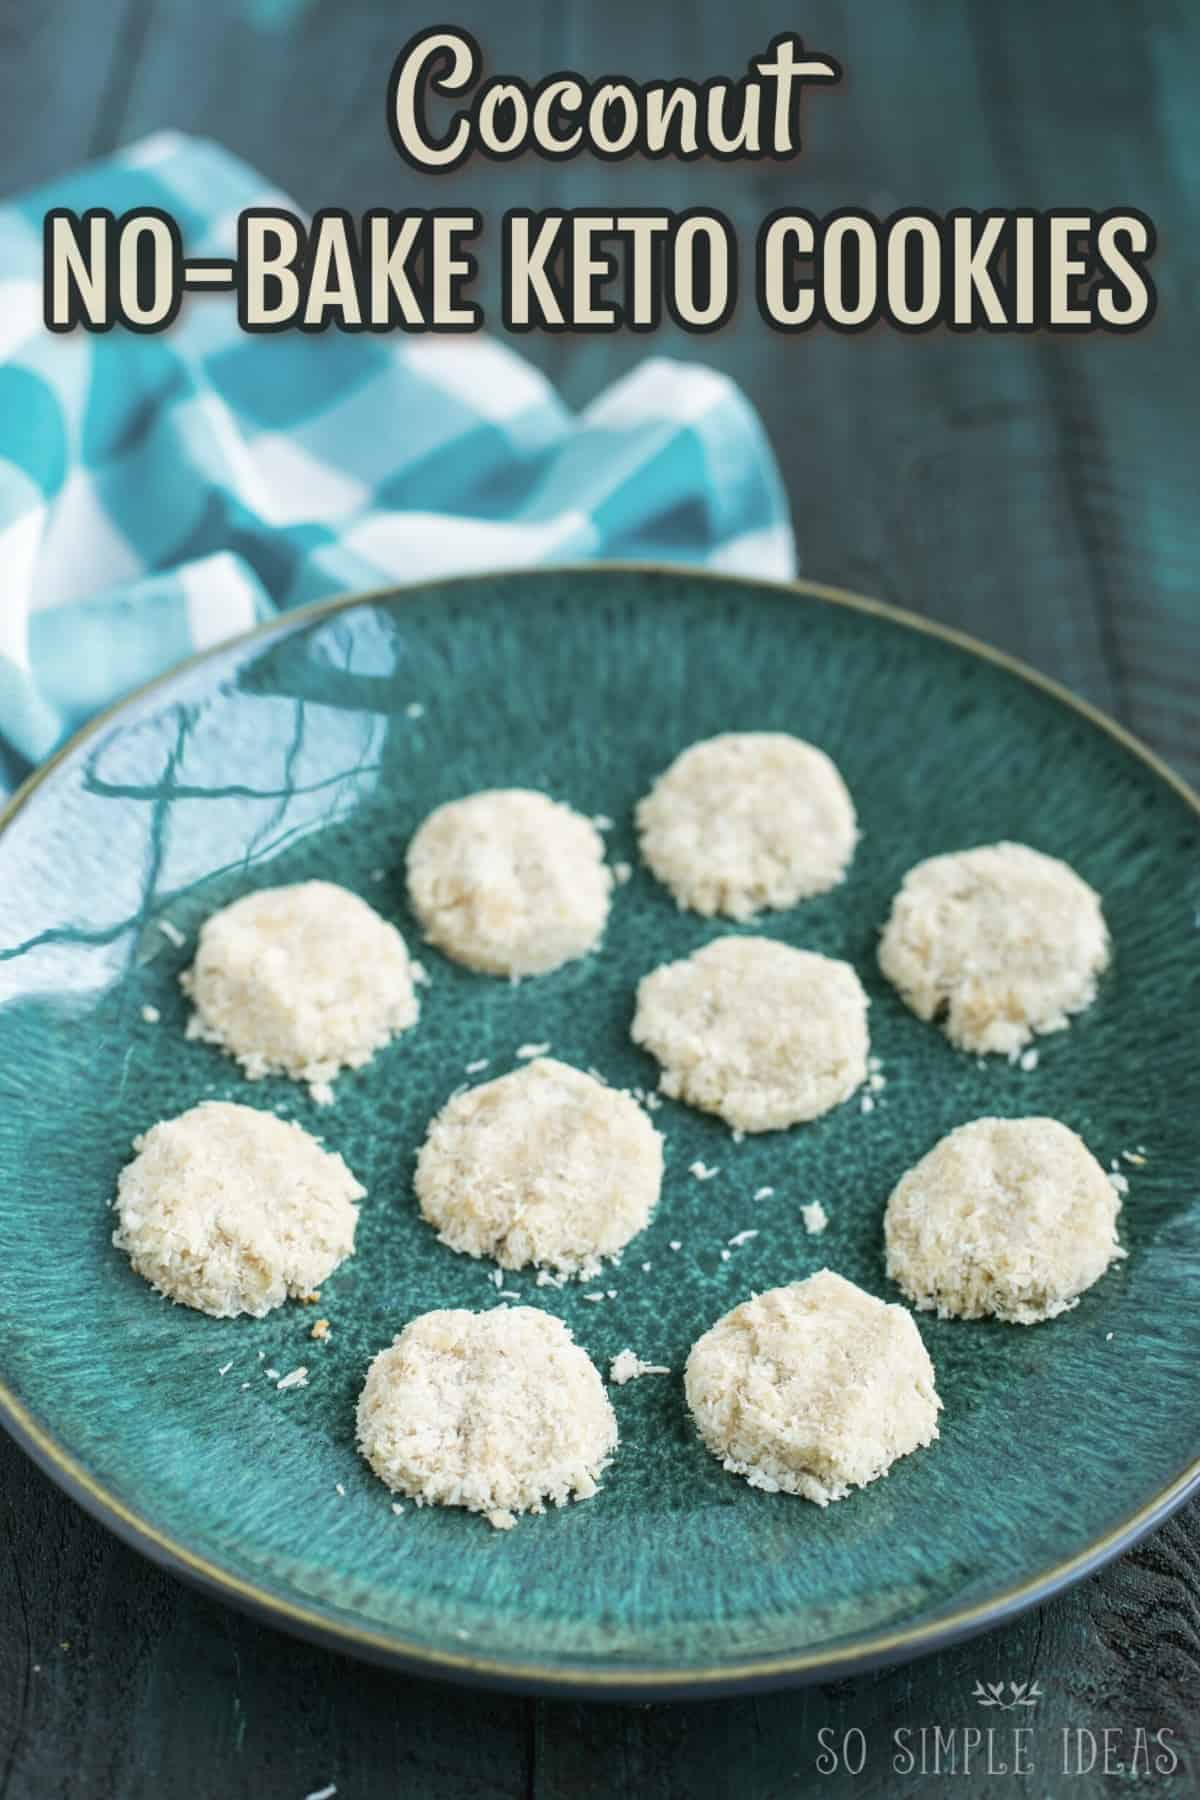 coconut keto no bake cookies recipe cover image